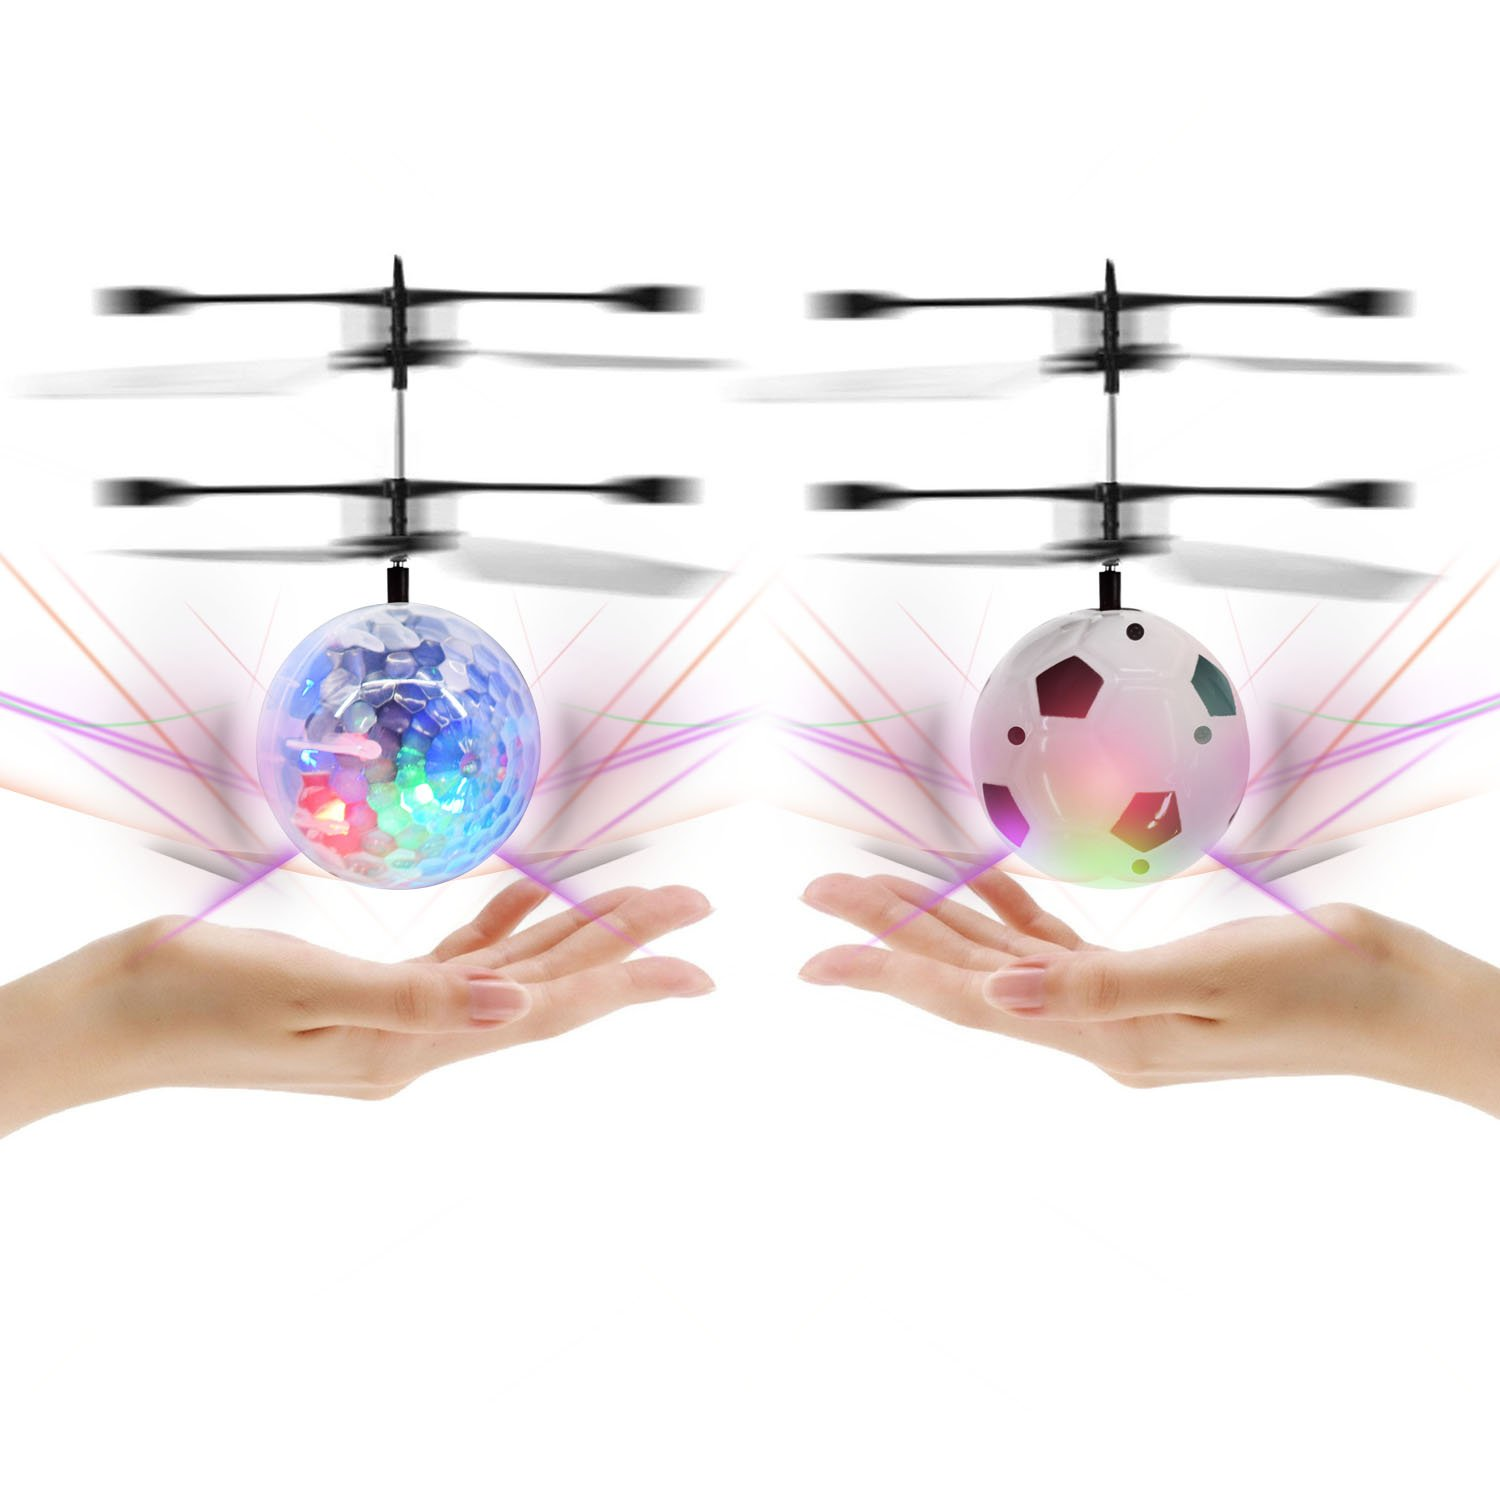 Racol RC Flyling Ball 2 Pack, RC Flying Toy Helicopter Drone Infrared Induction with Built-in Flashing LED Light Gifts for Boys Girls Teenagers Indoor and Outdoor Games